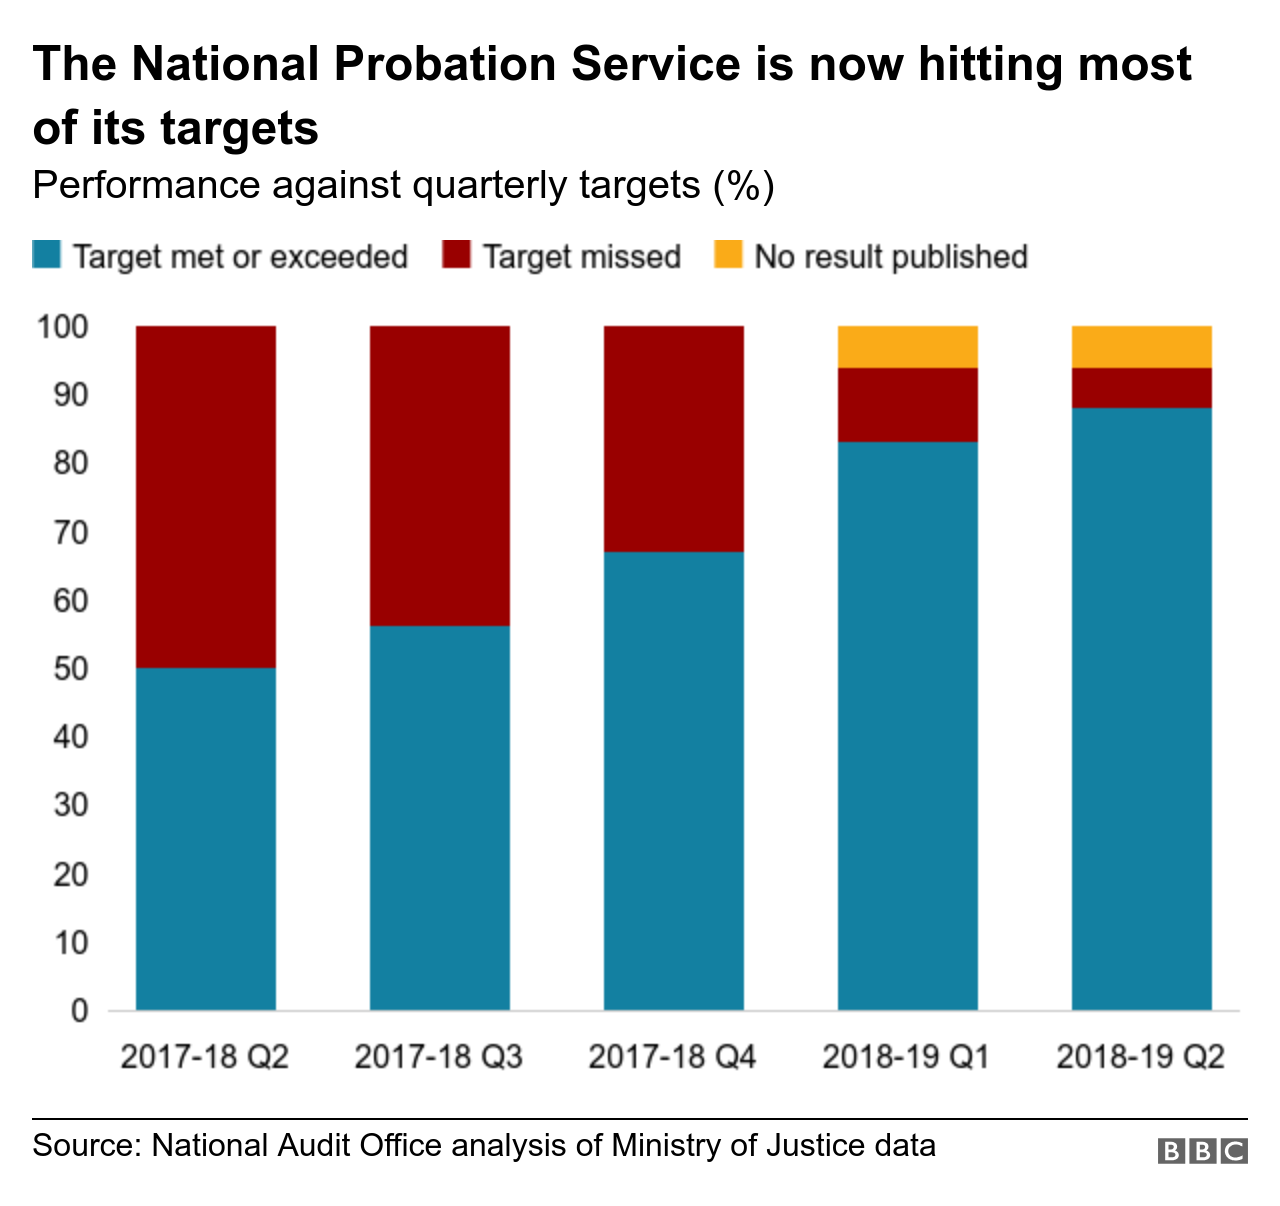 Chart showing how the probation service is hitting most targets